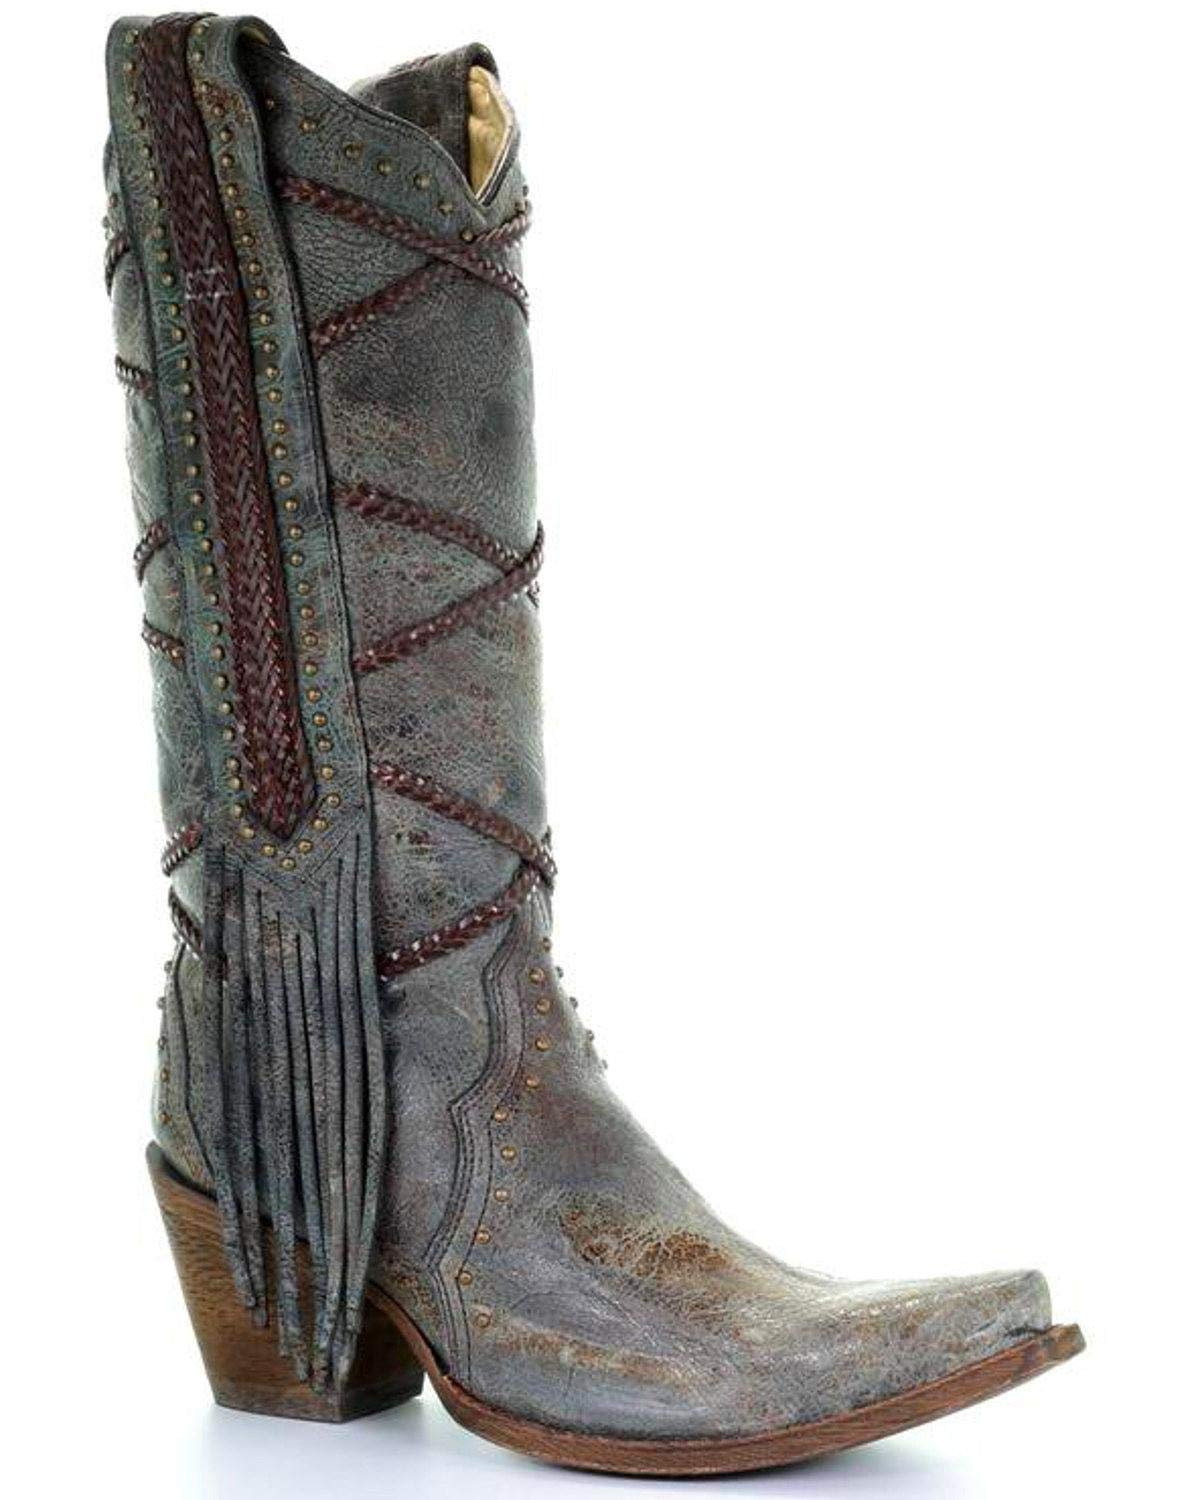 20a75a1738d Amazon.com  Corral Women s 13-inch Blue Brown Braiding   Fringe Snip Toe  Distressed Cowboy Boots  Sports   Outdoors